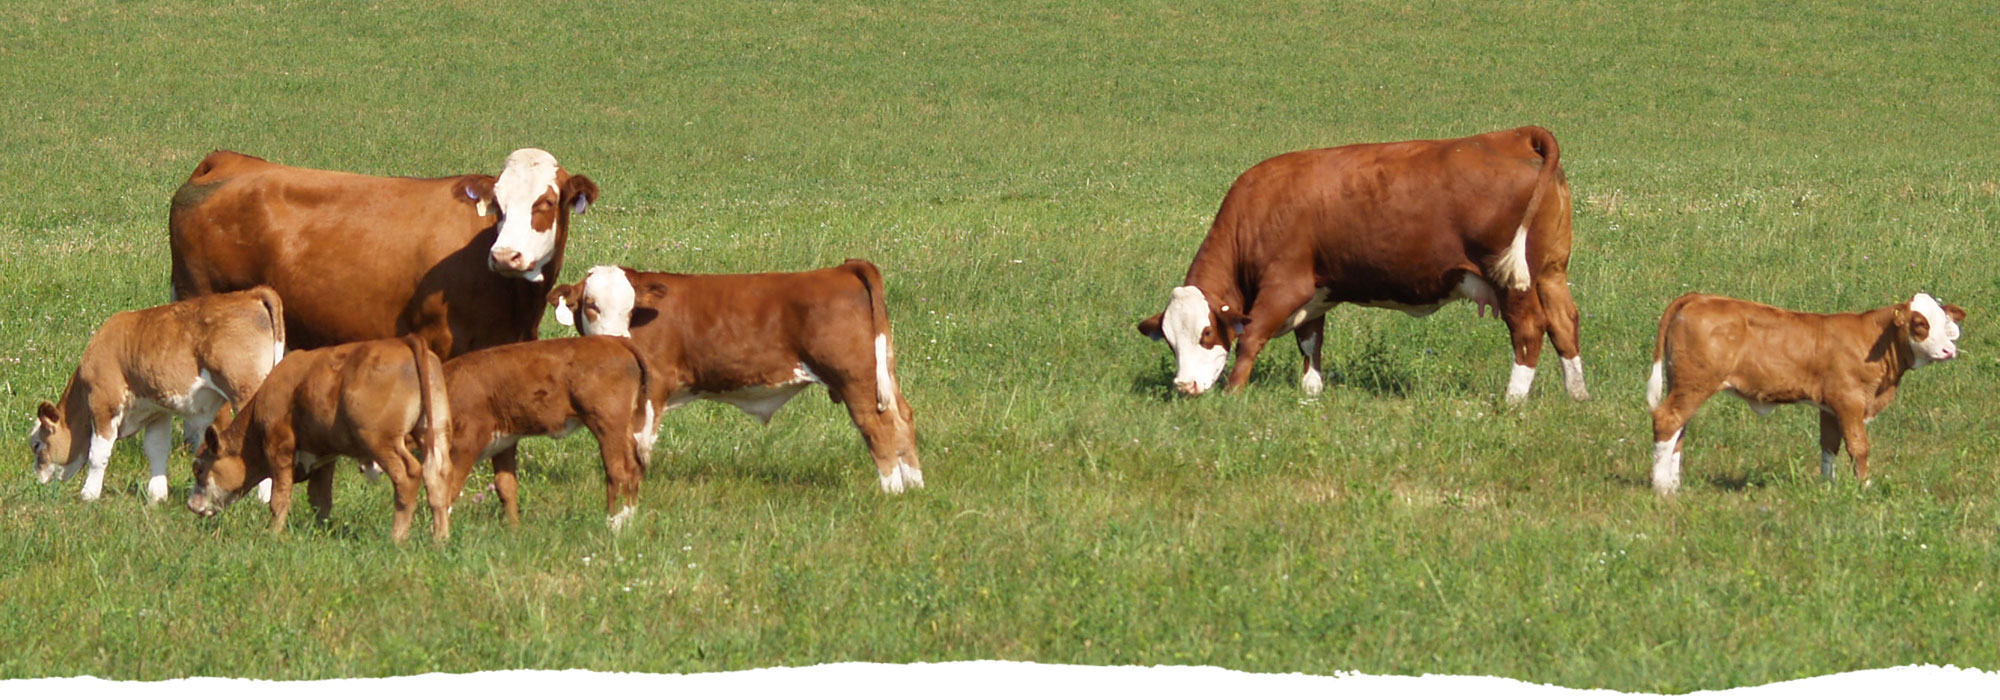 Close up shot of cattle and a few calves roaming the grass at Freedom Run Farm.